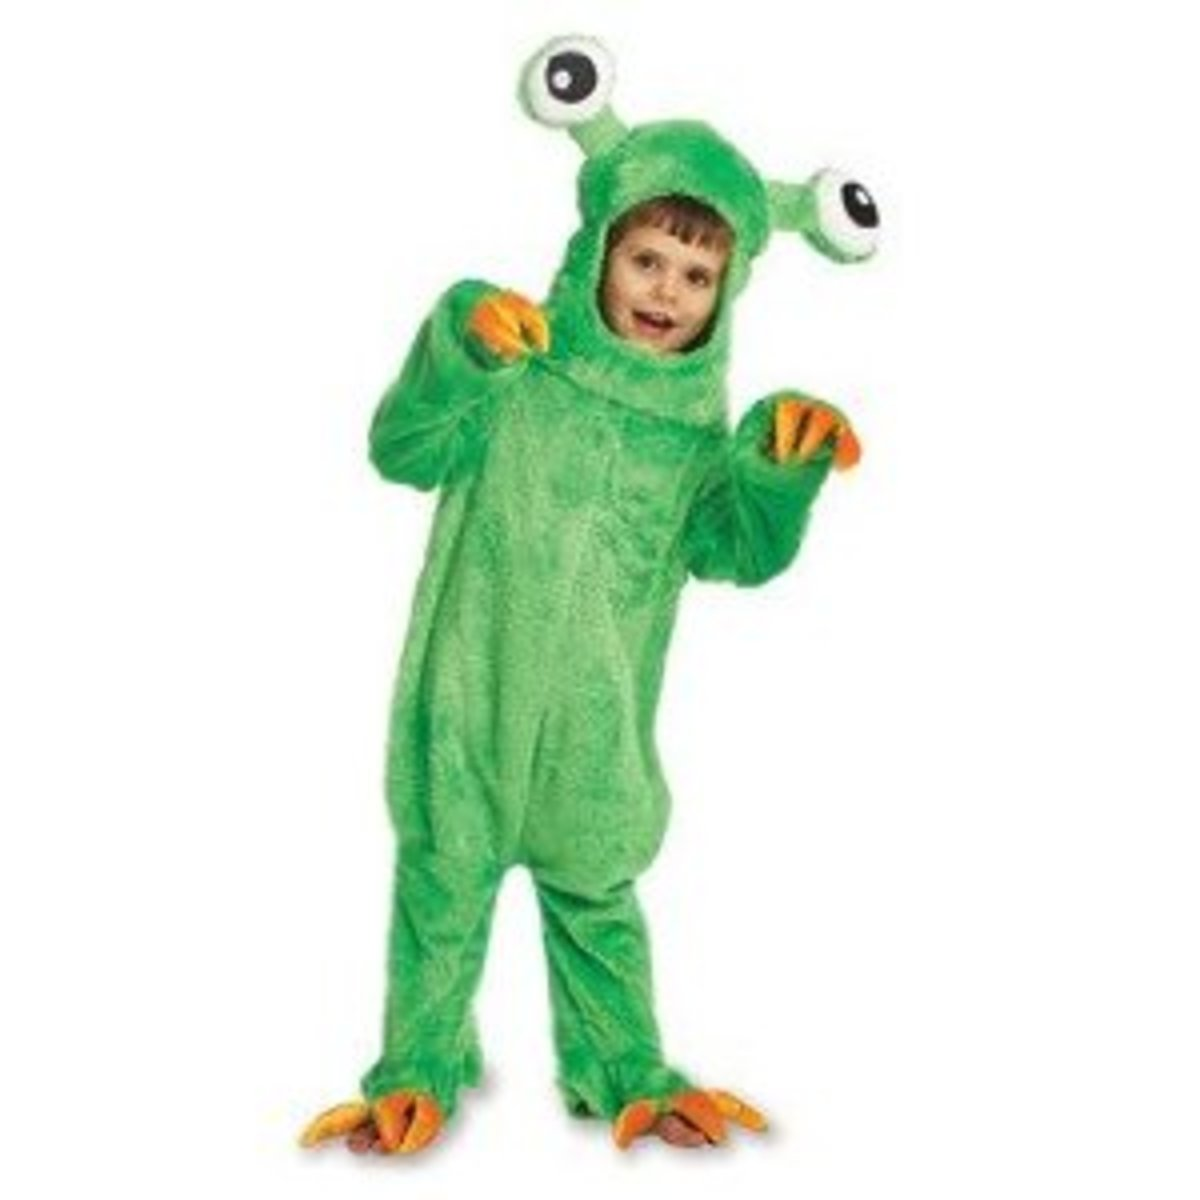 Big Green Monster Costume